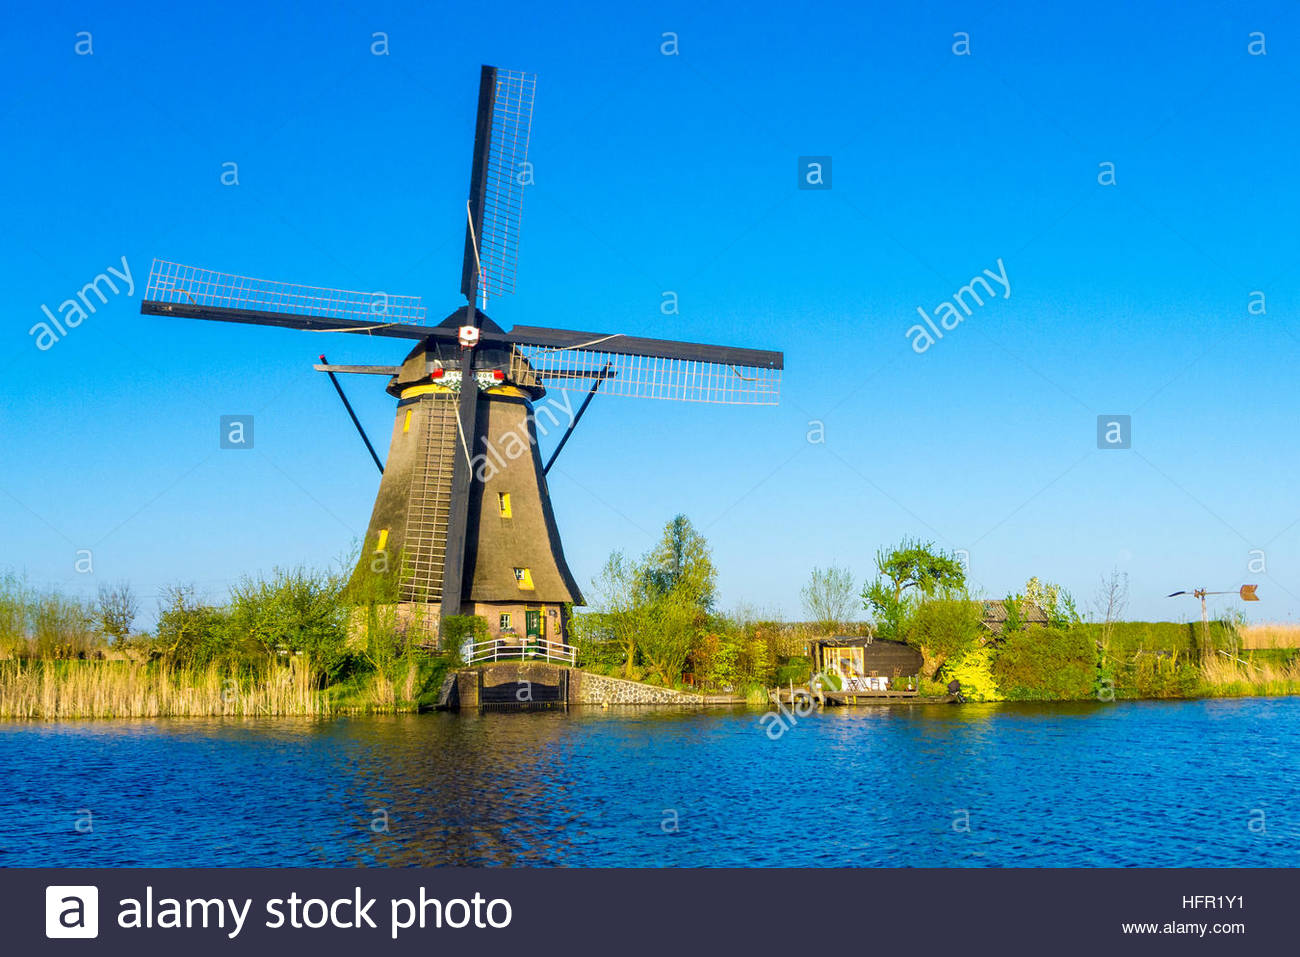 Netherlands, South Holland, Kinderdijk. Historic Dutch windmills on the polders, UNESCO World Heritage Site. - Stock Image